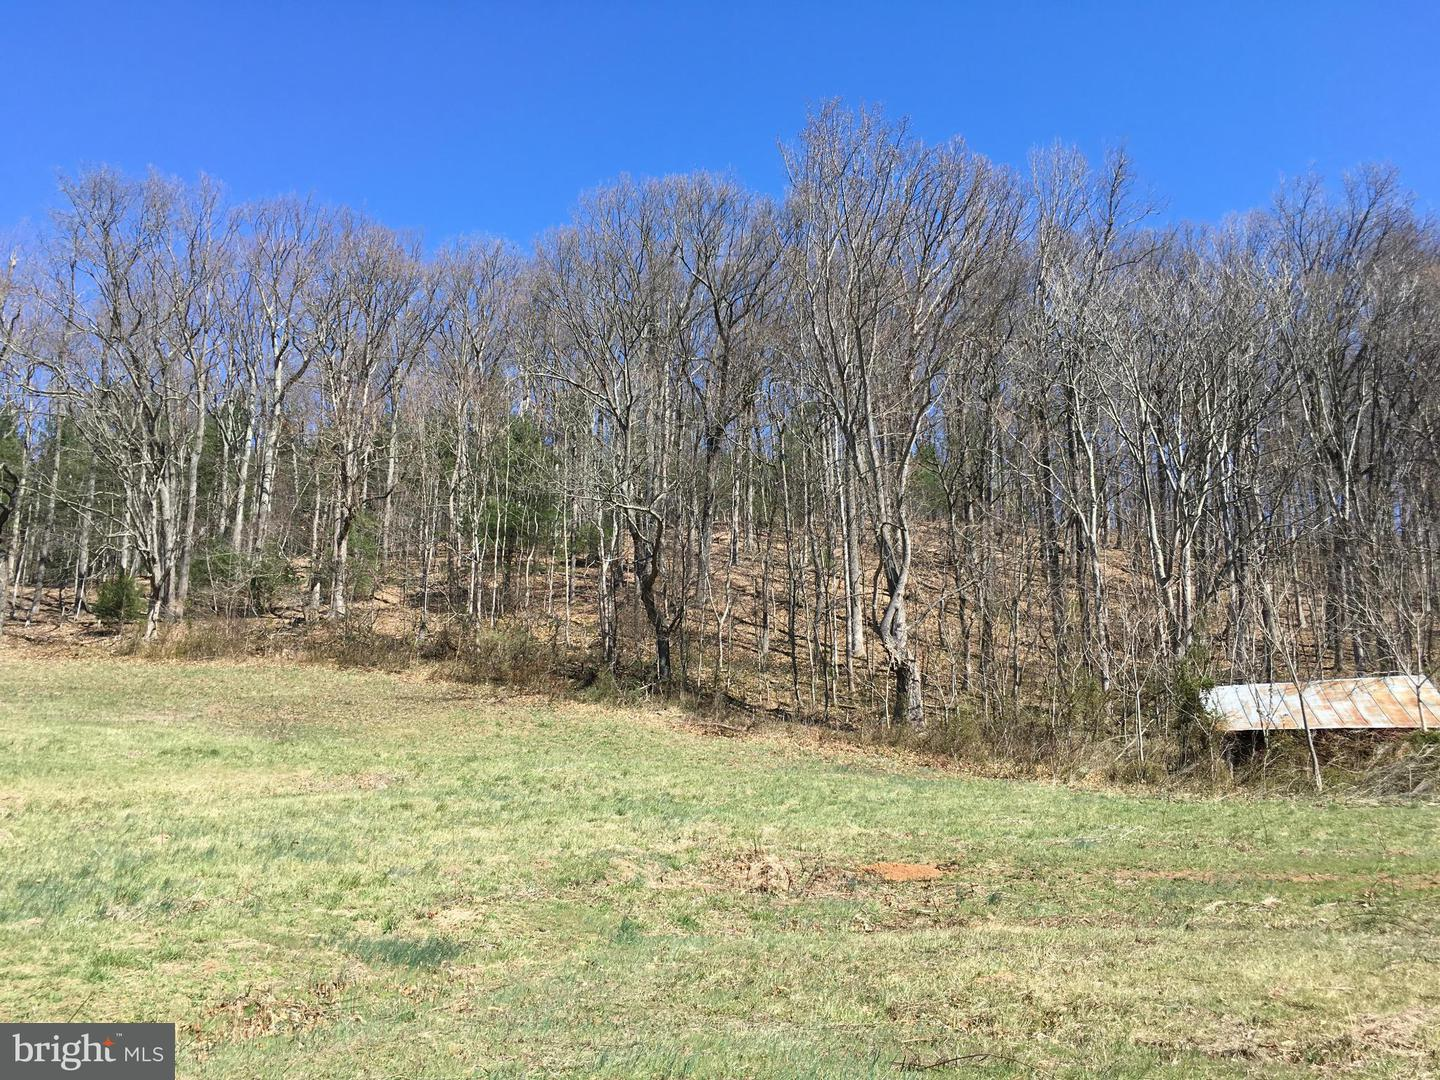 Land for Sale at Sperryville Pike Woodville, Virginia 22749 United States